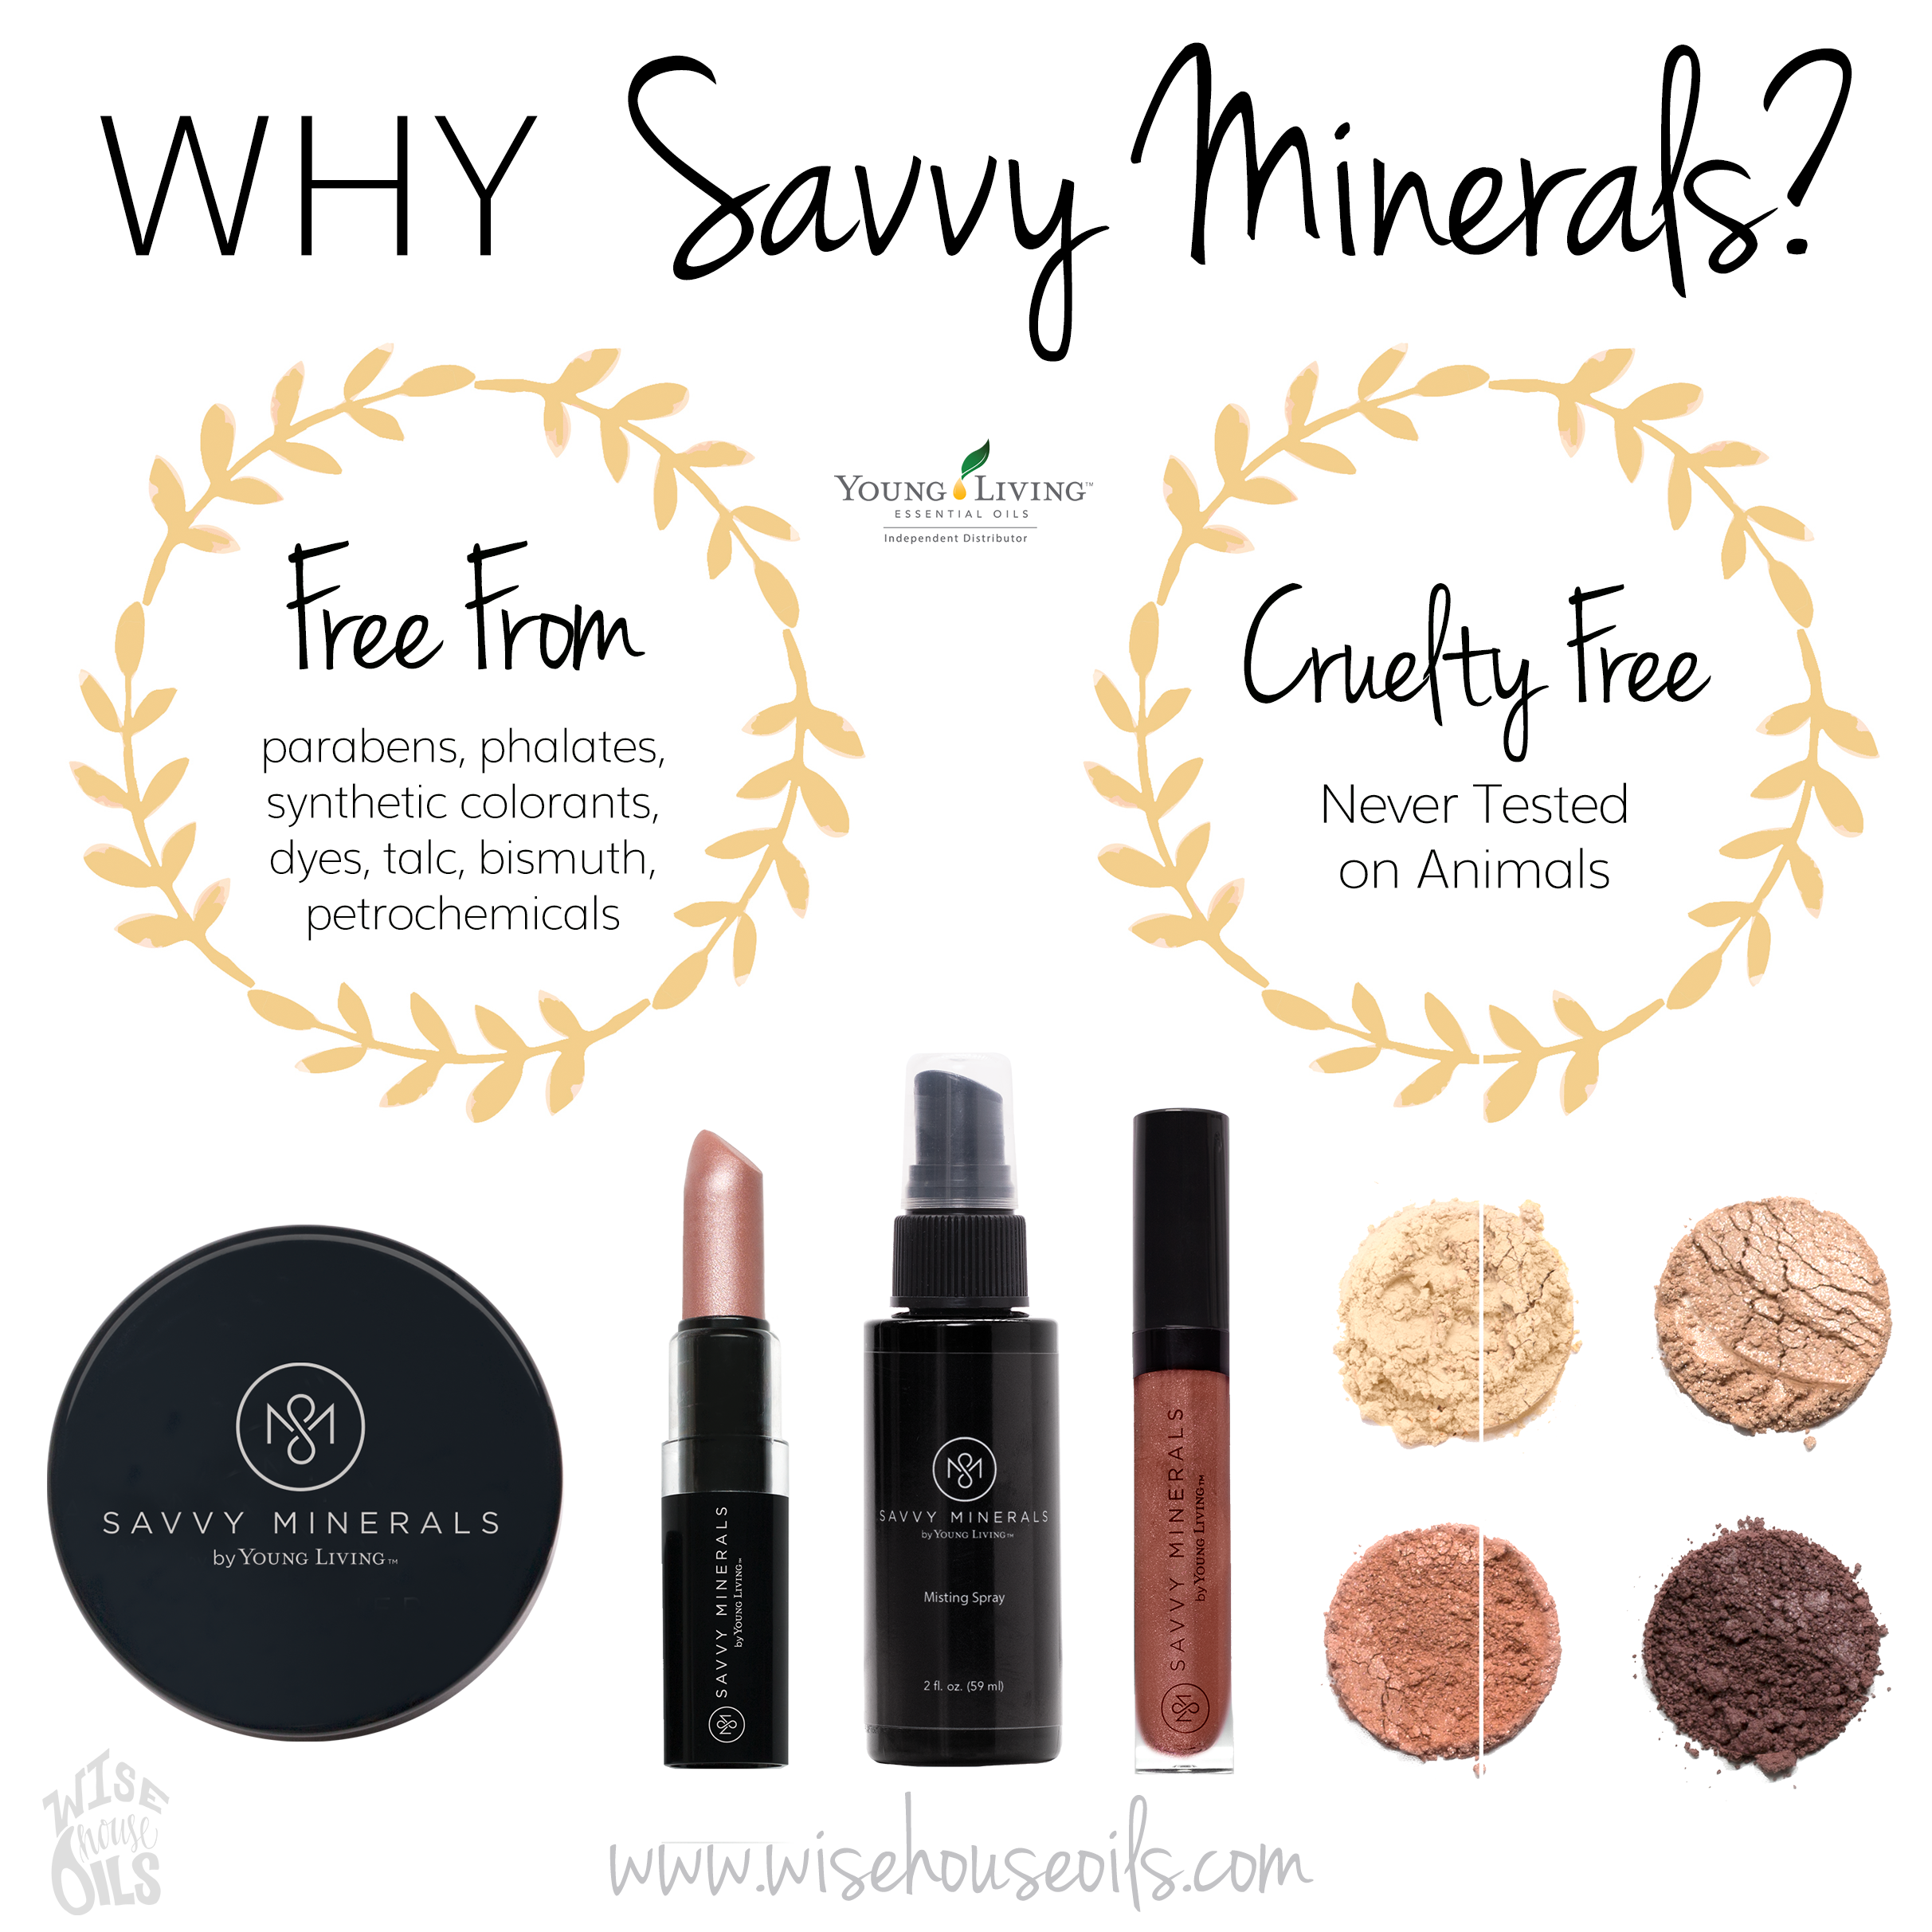 Young Living Savvy Minerals Makeup: Why Savvy Minerals By Young Living